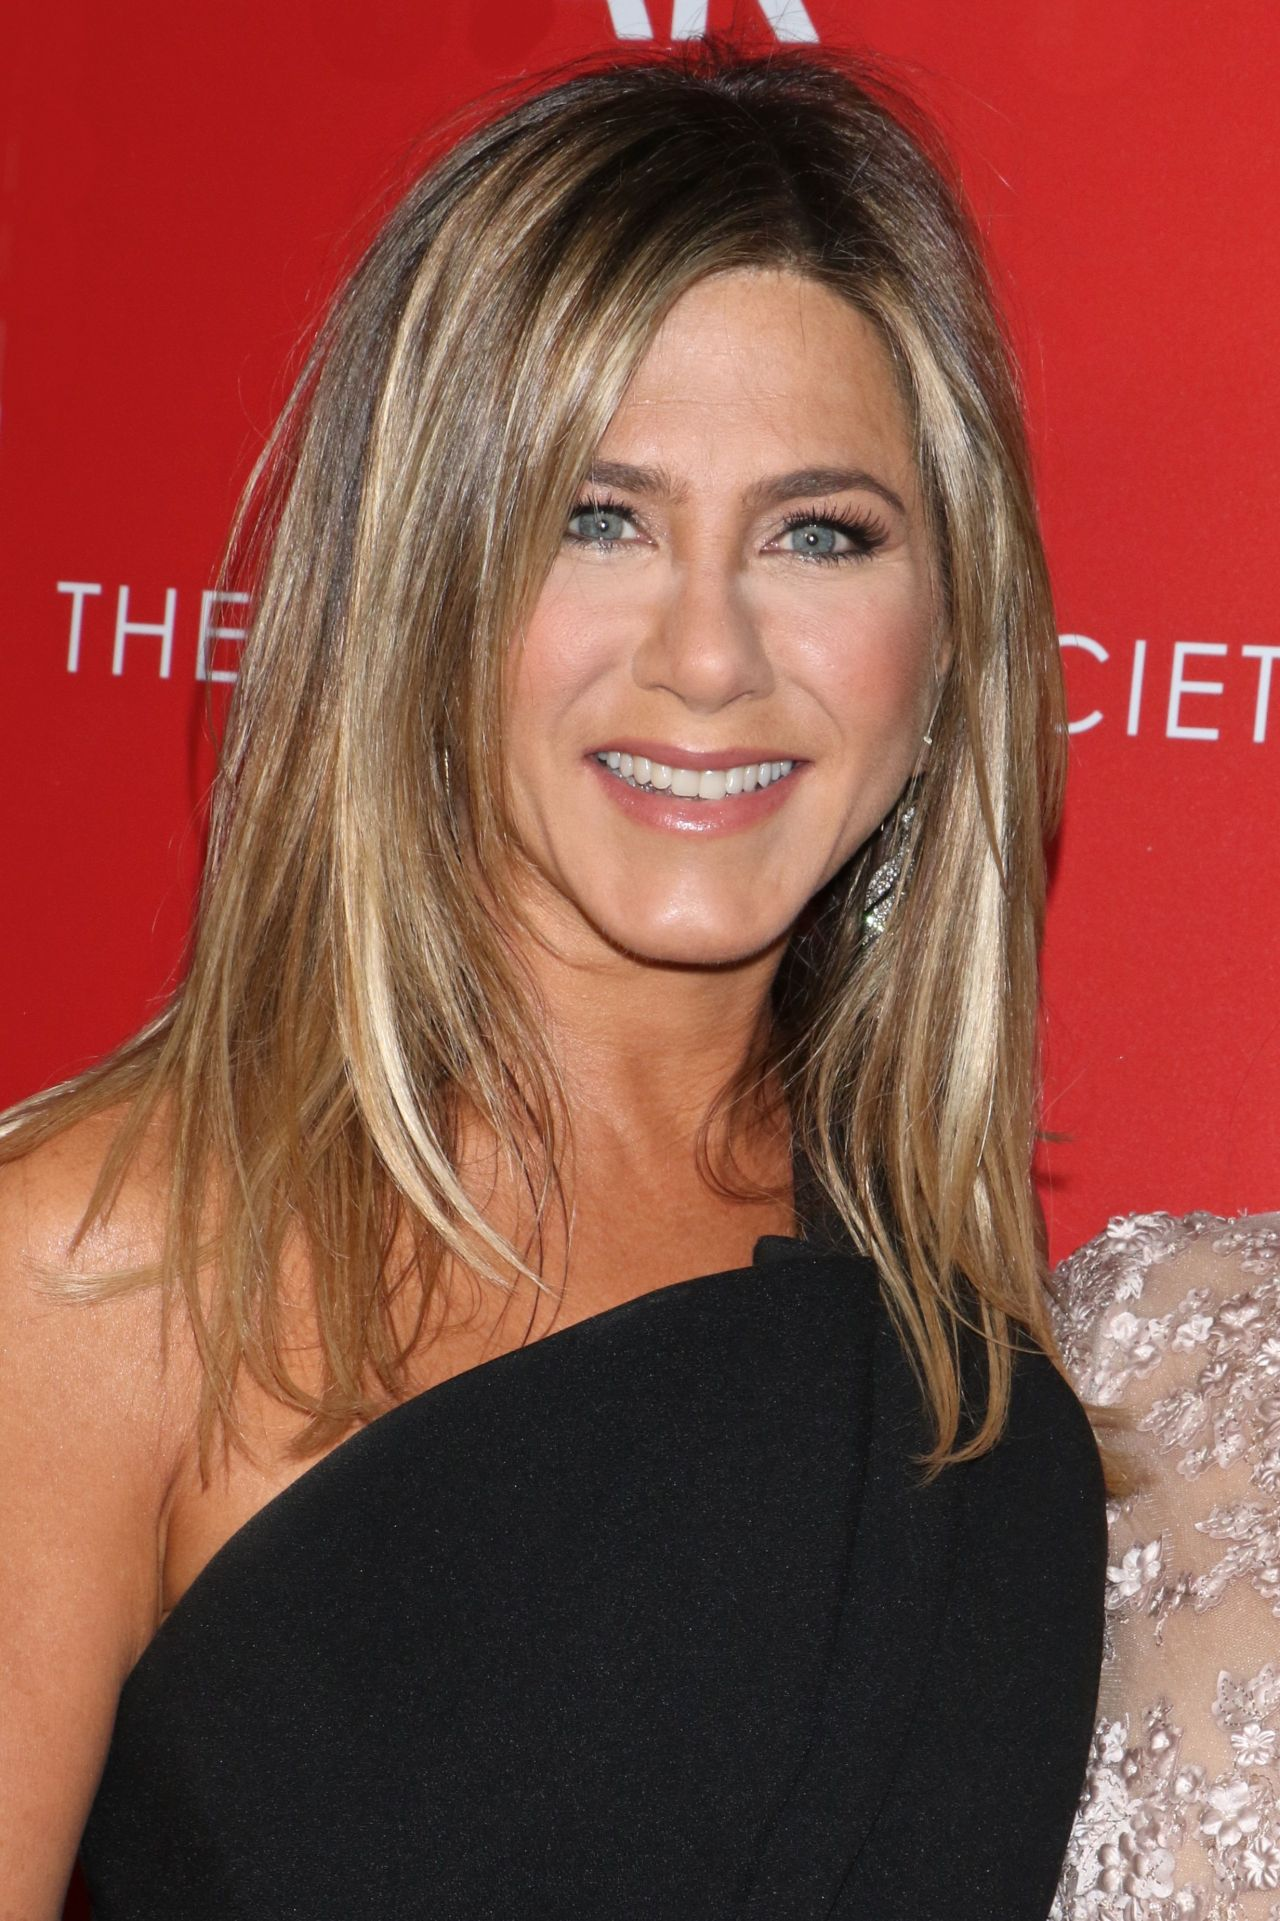 Jennifer Aniston Lates... Jennifer Aniston